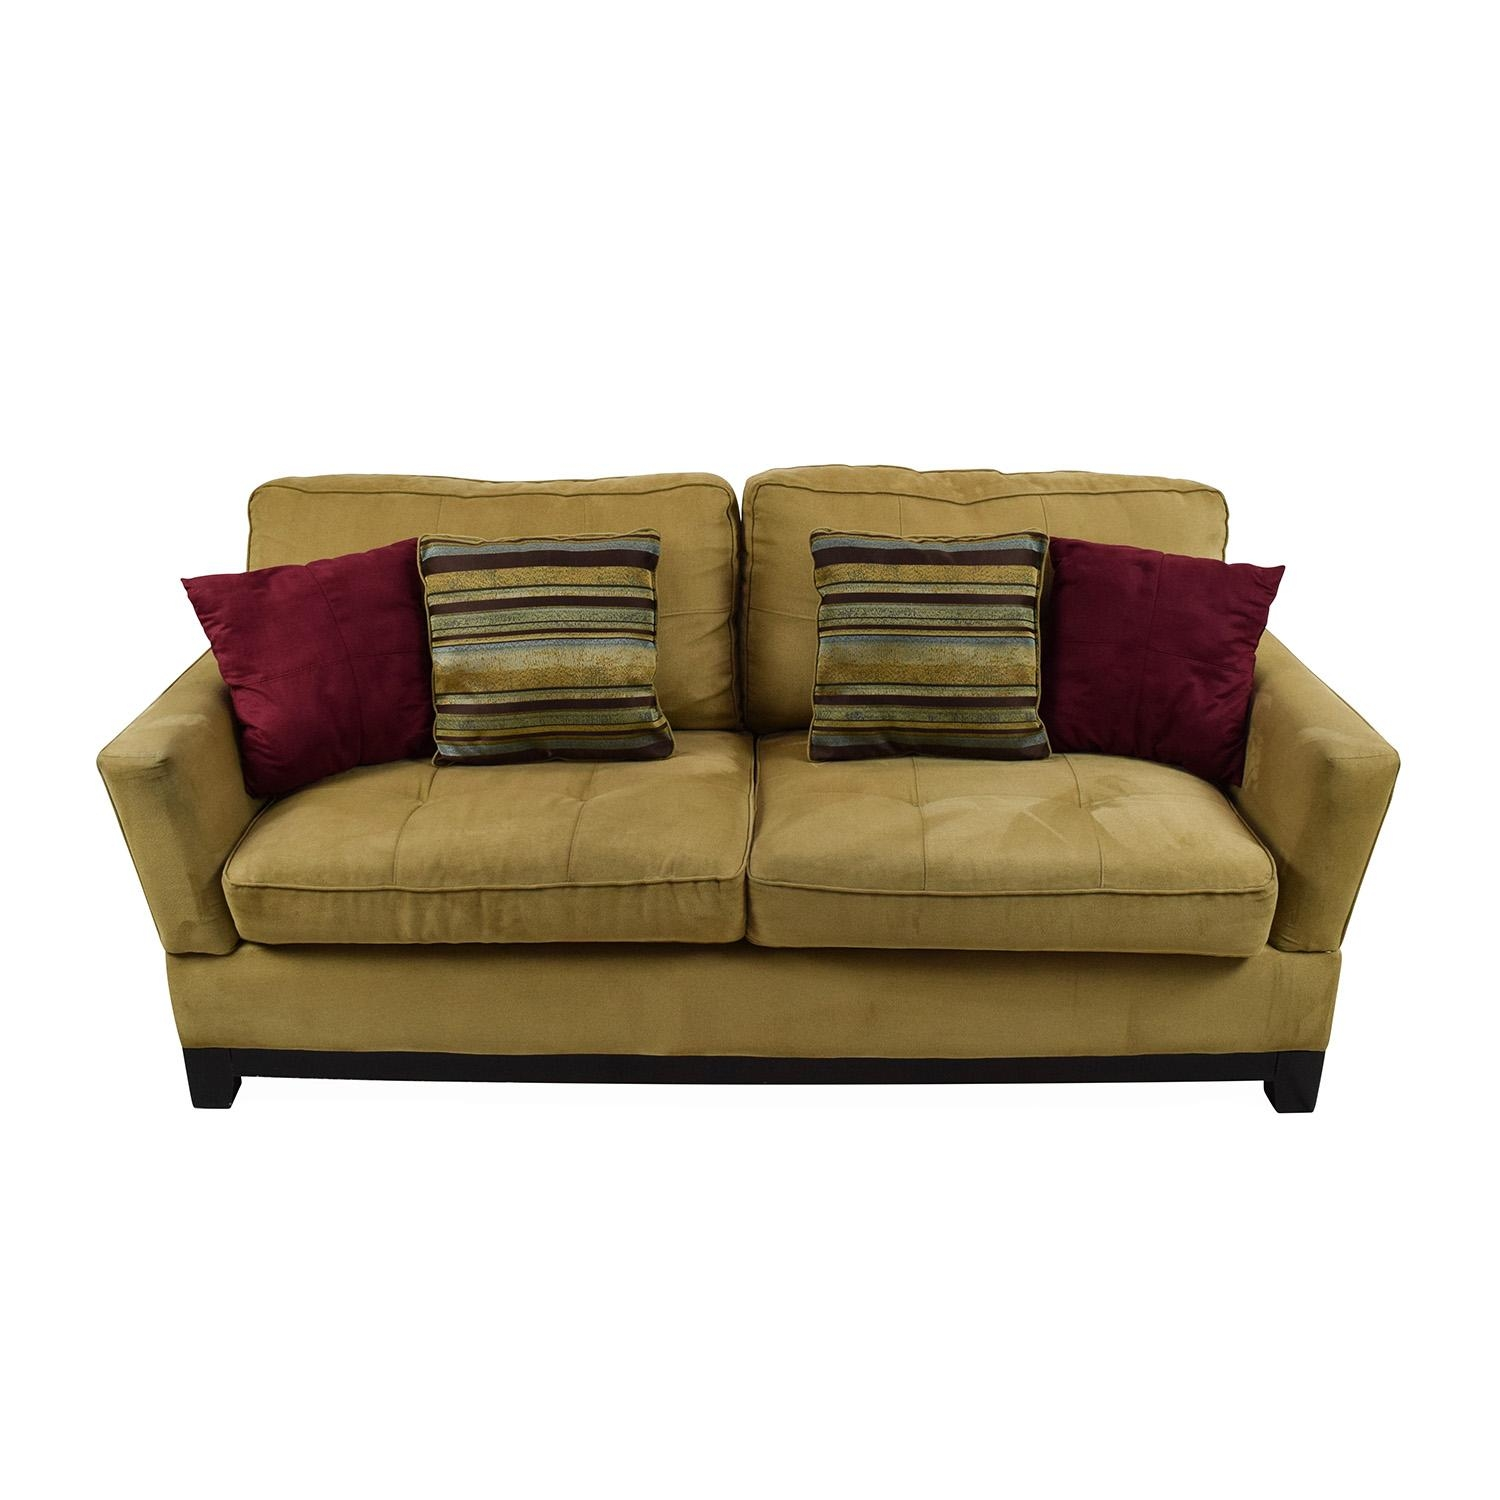 78% Off – Jennifer Convertibles Jennifer Convertibles Tan Sofa / Sofas With Regard To Jennifer Sofas (View 1 of 20)